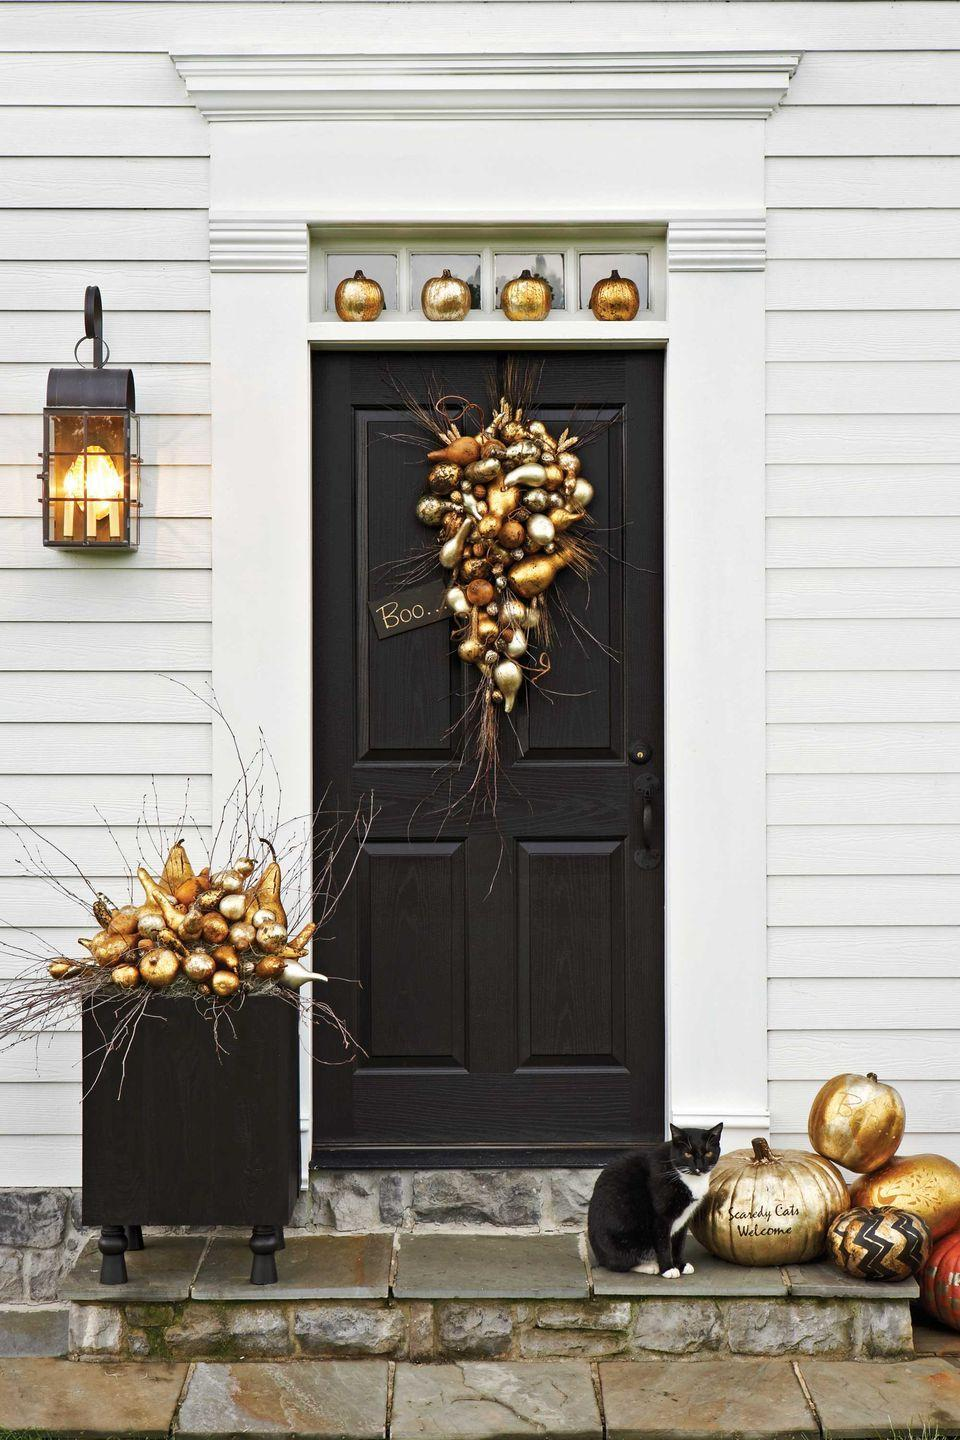 """<p>What's it take to achieve this shimmering display? Gourds, pumpkins, and a gilding kit! When all these metallic colors come together, your entrance will turn into one hot spot.</p><p><strong><a href=""""https://www.countryliving.com/diy-crafts/how-to/g616/how-to-guild-a-pumpkin/"""" rel=""""nofollow noopener"""" target=""""_blank"""" data-ylk=""""slk:Get the tutorial"""" class=""""link rapid-noclick-resp"""">Get the tutorial</a>.</strong> </p>"""